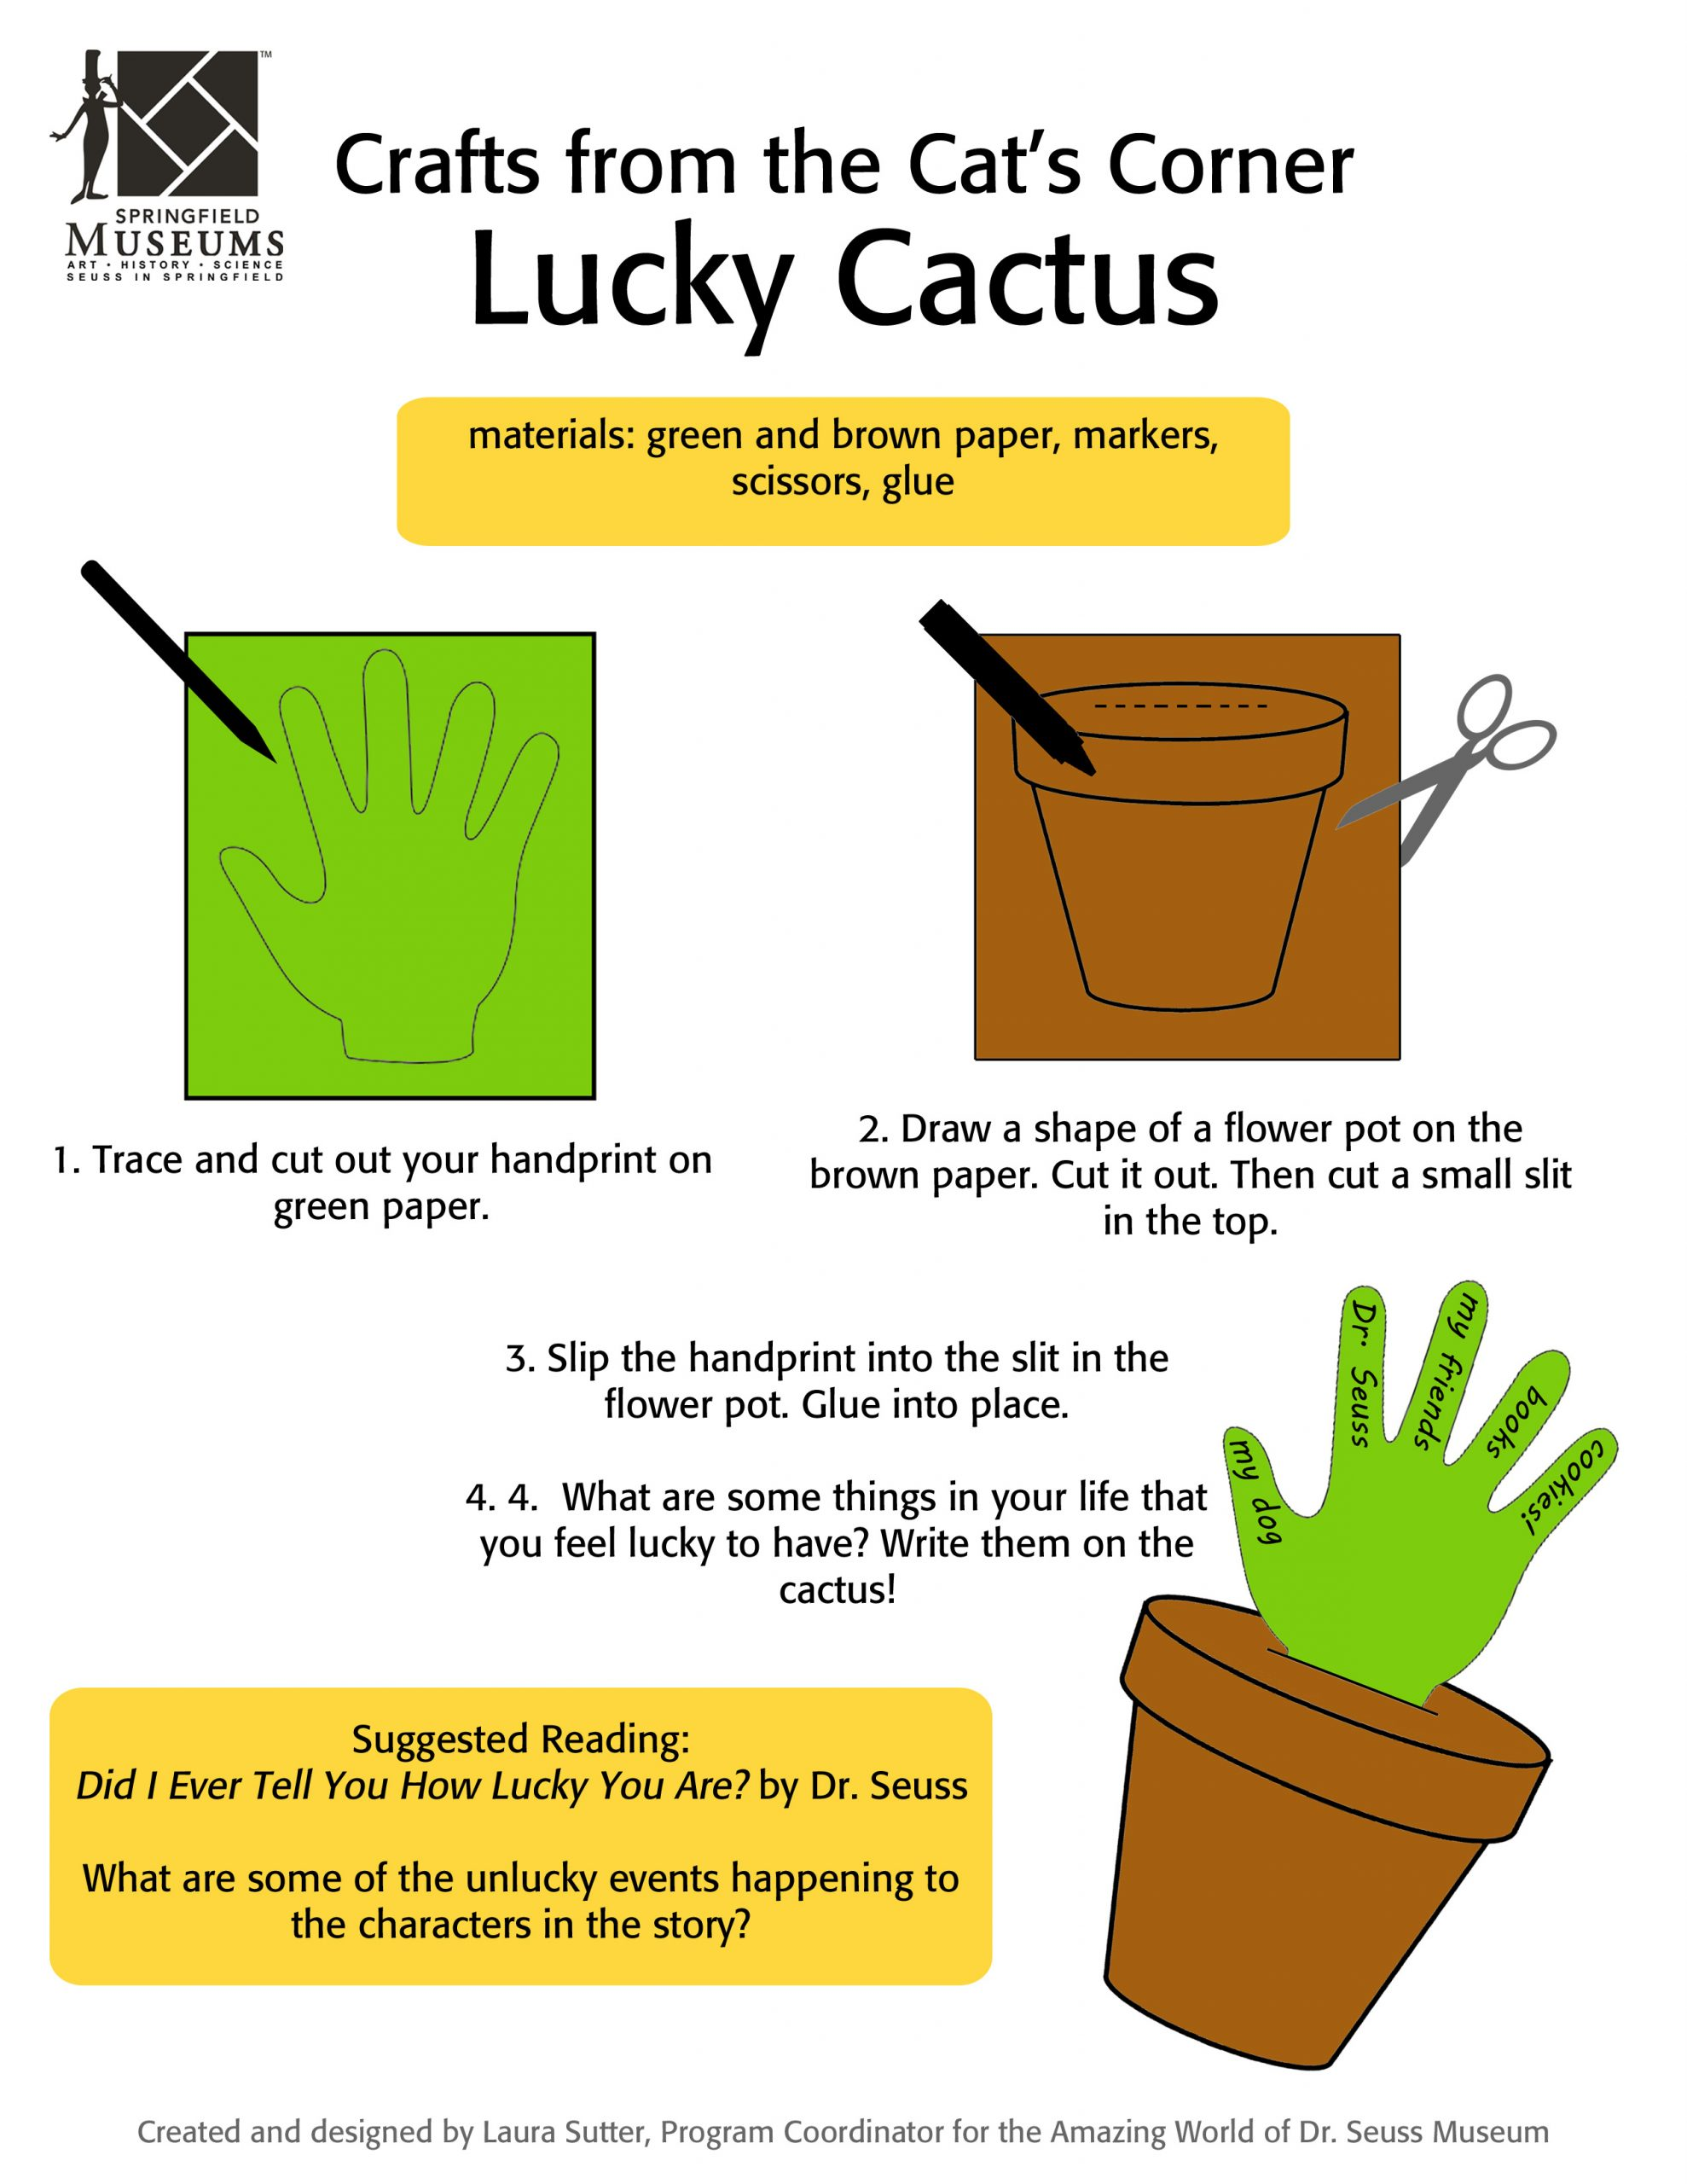 Crafts from the Cat's Corner: Lucky Cactus Activity Instructions